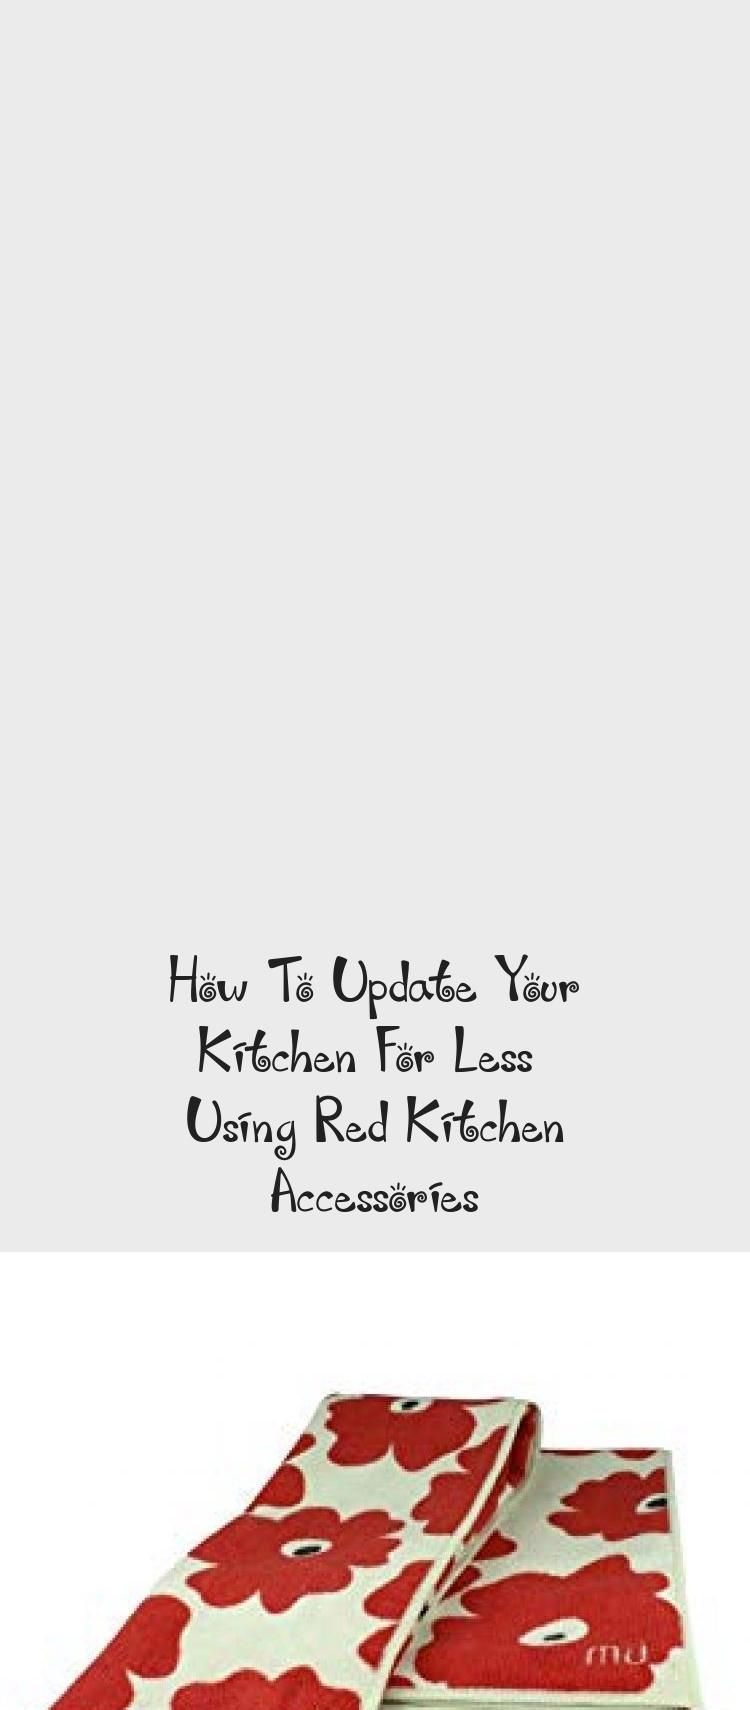 How To Update Your Kitchen For Less – Using Red Kitchen Accessories – KTCHN Kitchen